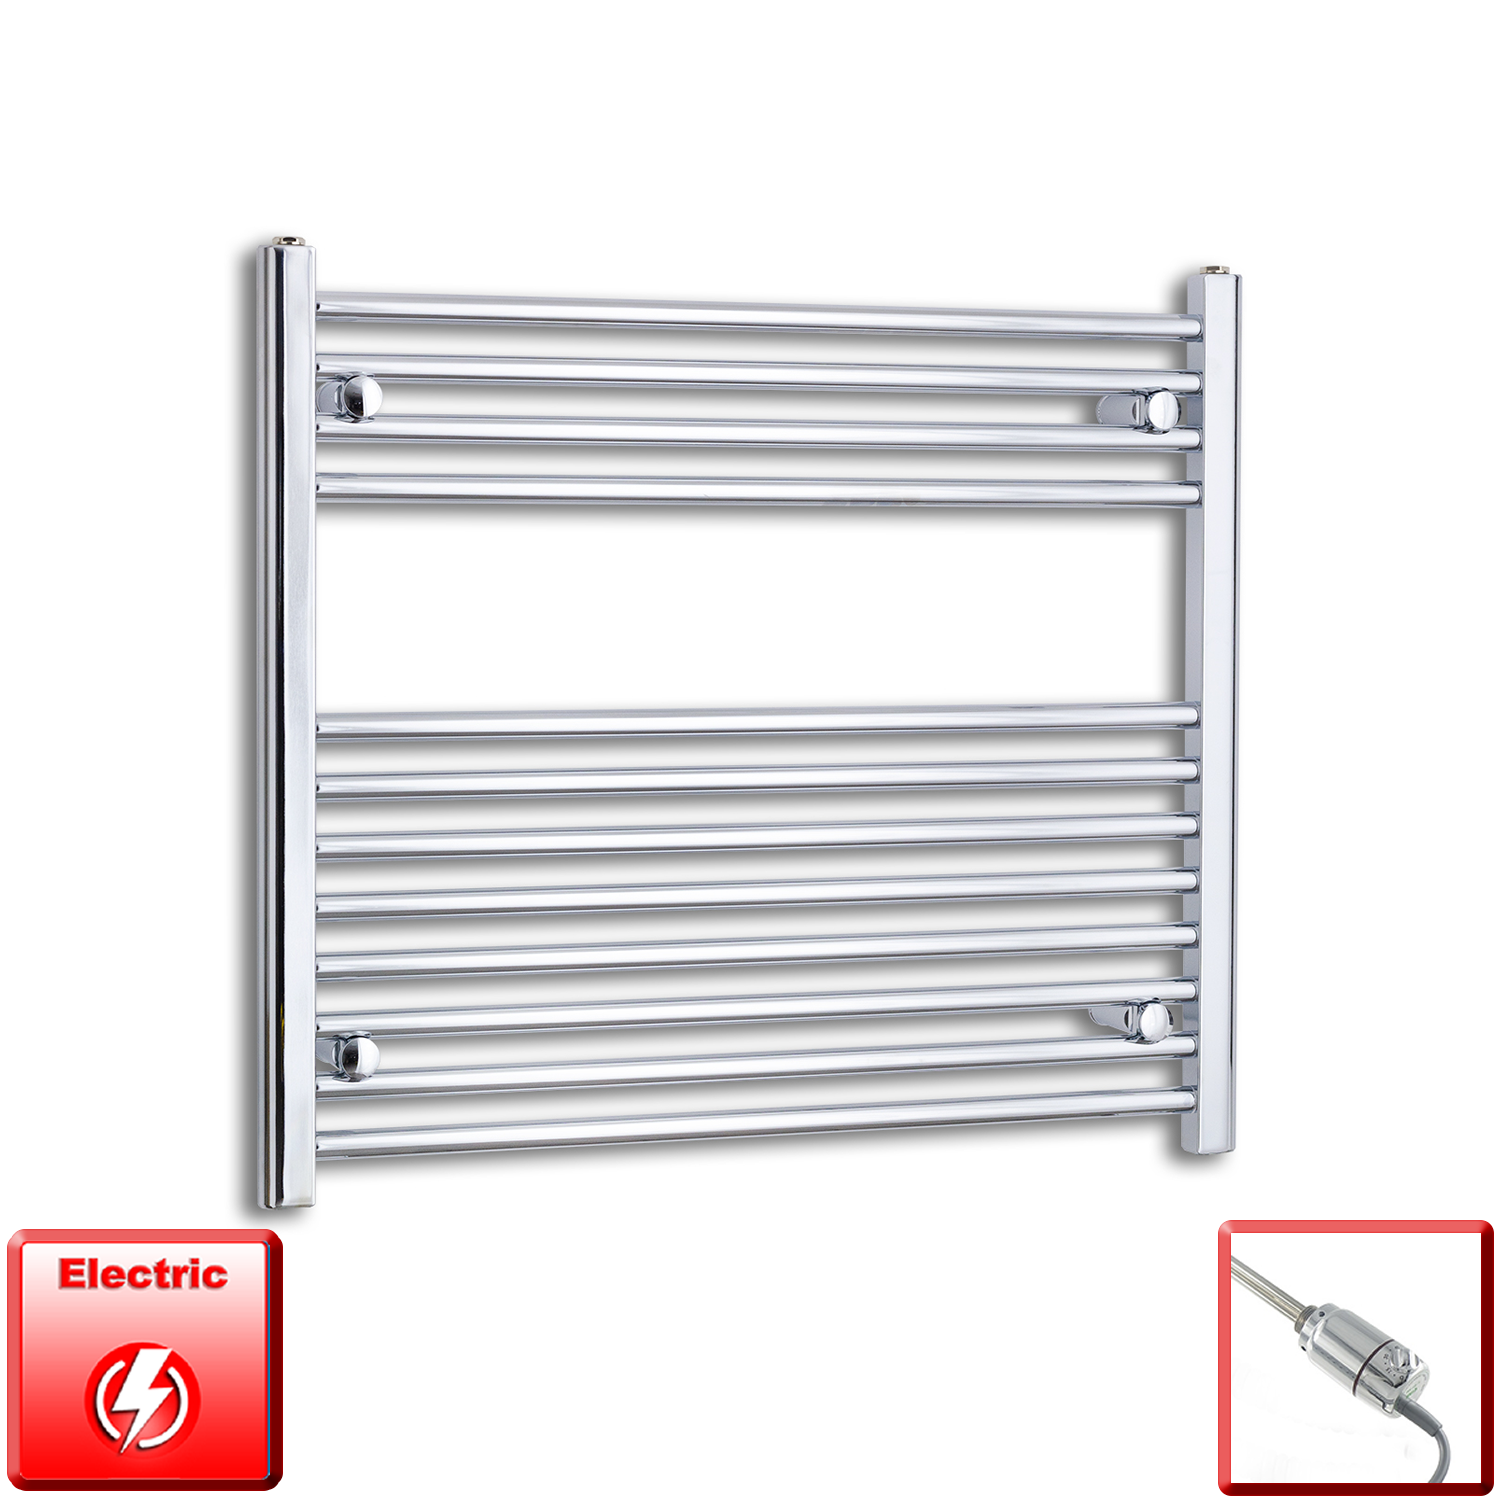 800mm Wide 700mm High Flat Chrome Pre-Filled Electric Heated Towel Rail Radiator HTR,GT Thermostatic